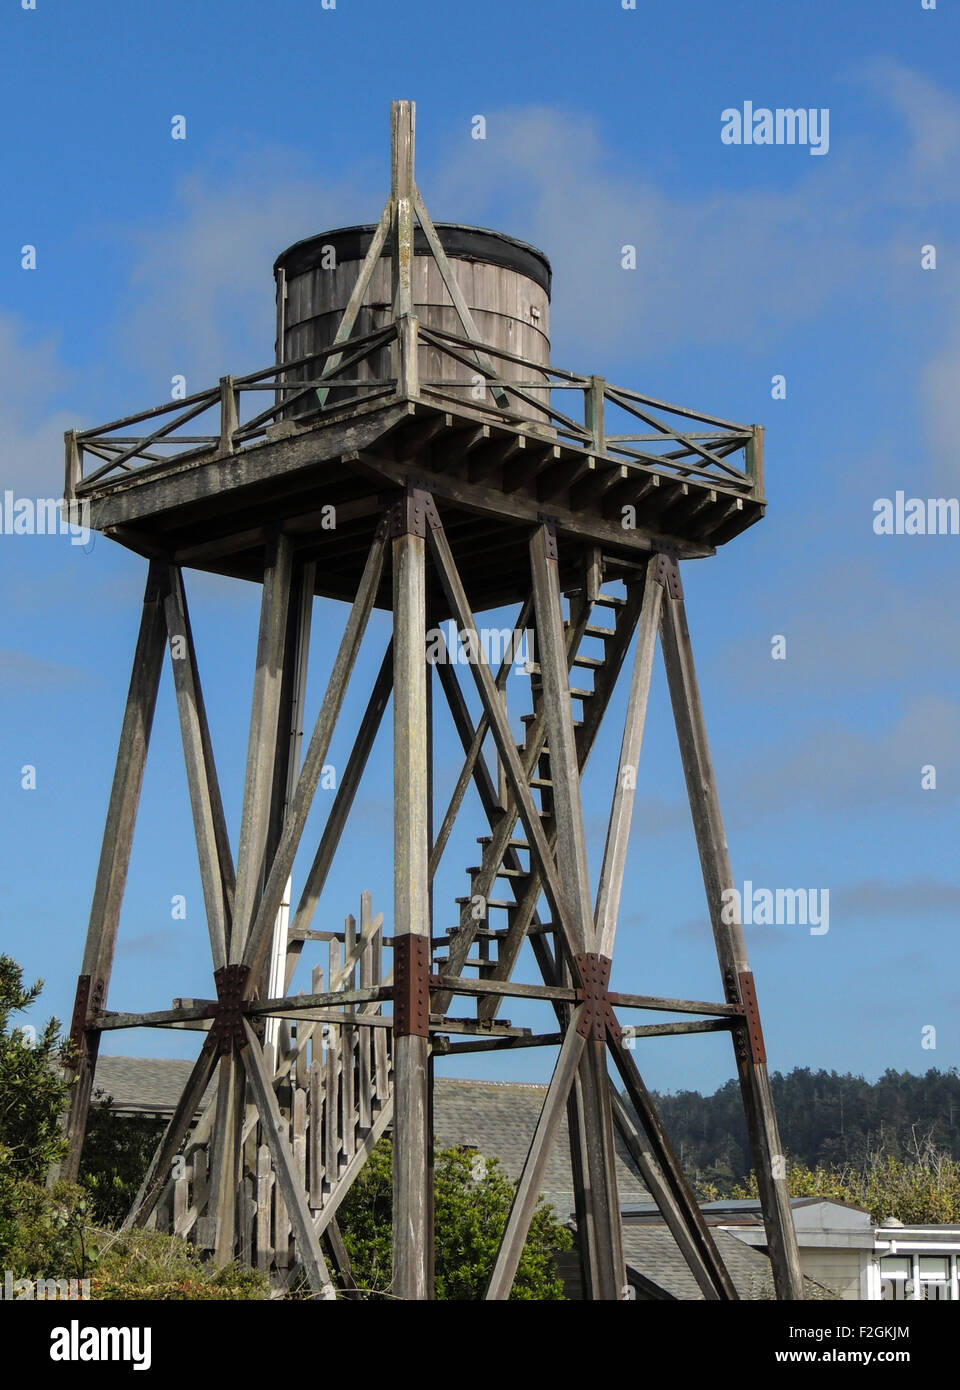 Wooden water towers like this one, many dating from the 1850's, are a common sight in the Town of Mendocino, - Stock Image